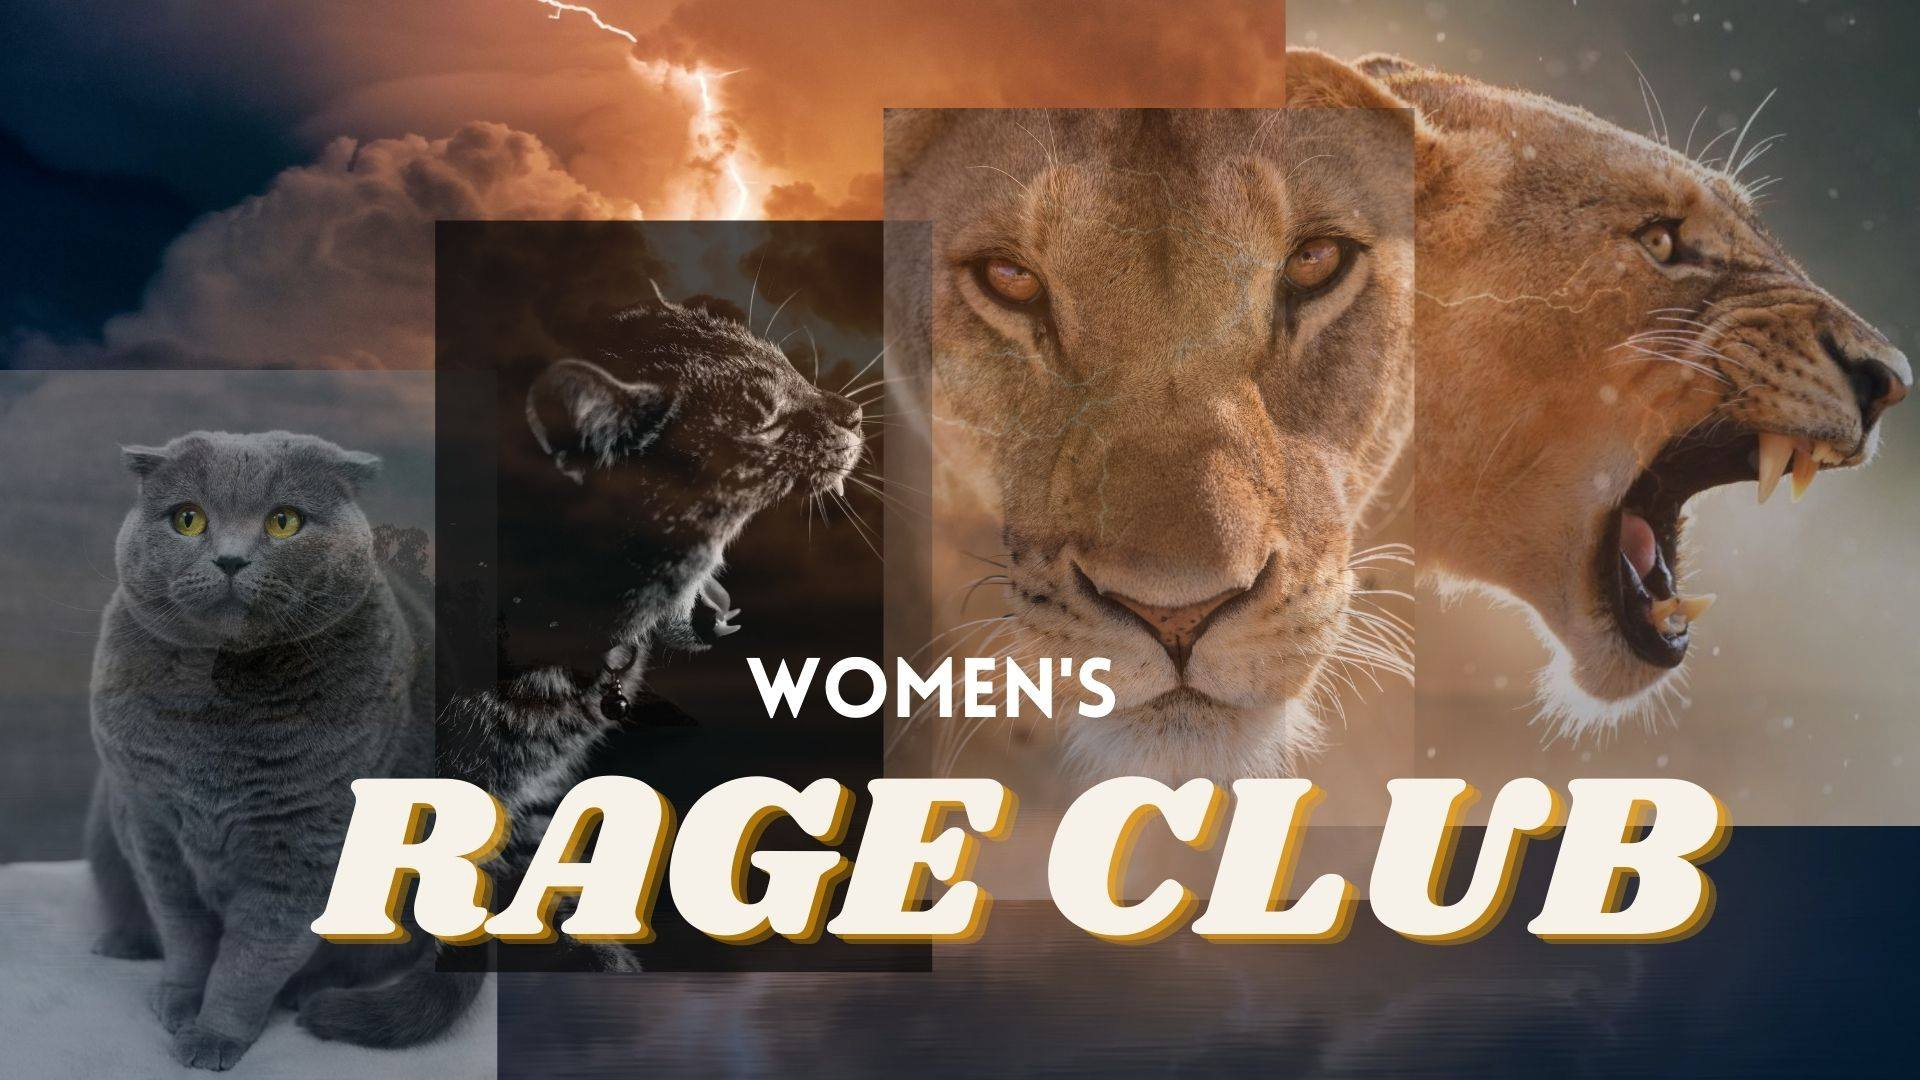 pictures of sweet cat, dangerous cat, lion, dangerous lion, inscription Women's Rage Club